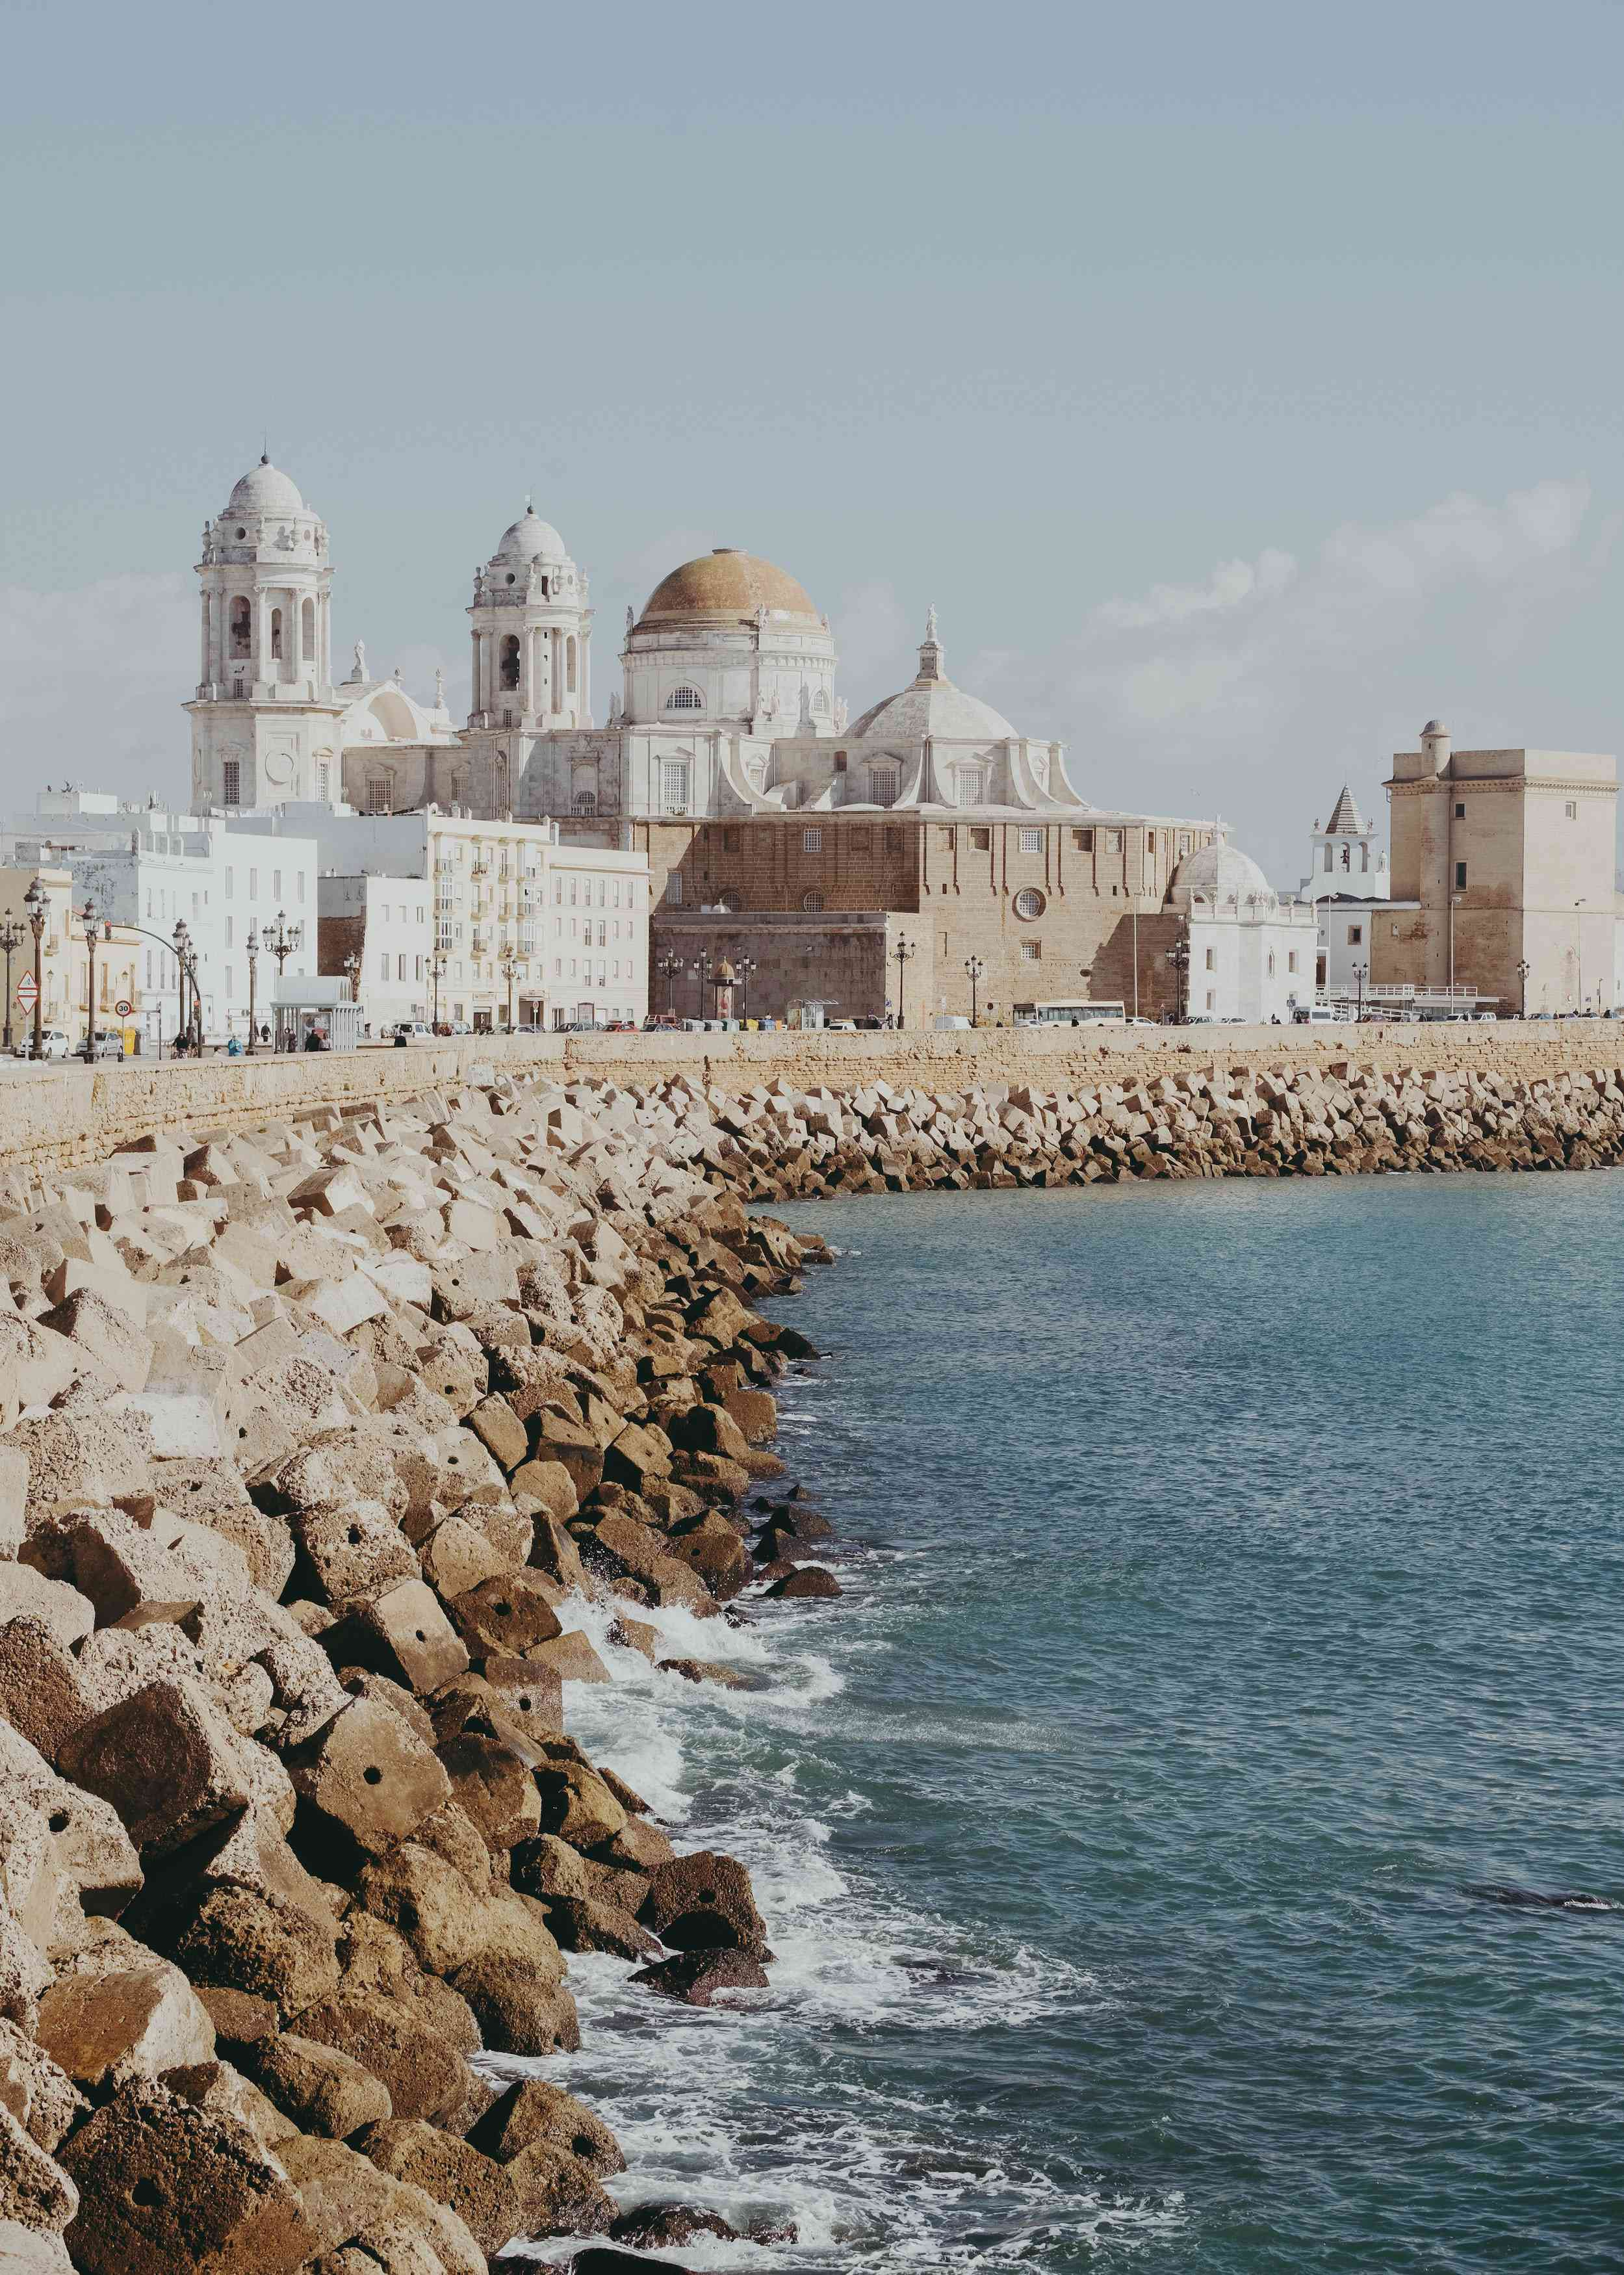 A rocky coastline leading up to a white palace in Cadiz, Spain